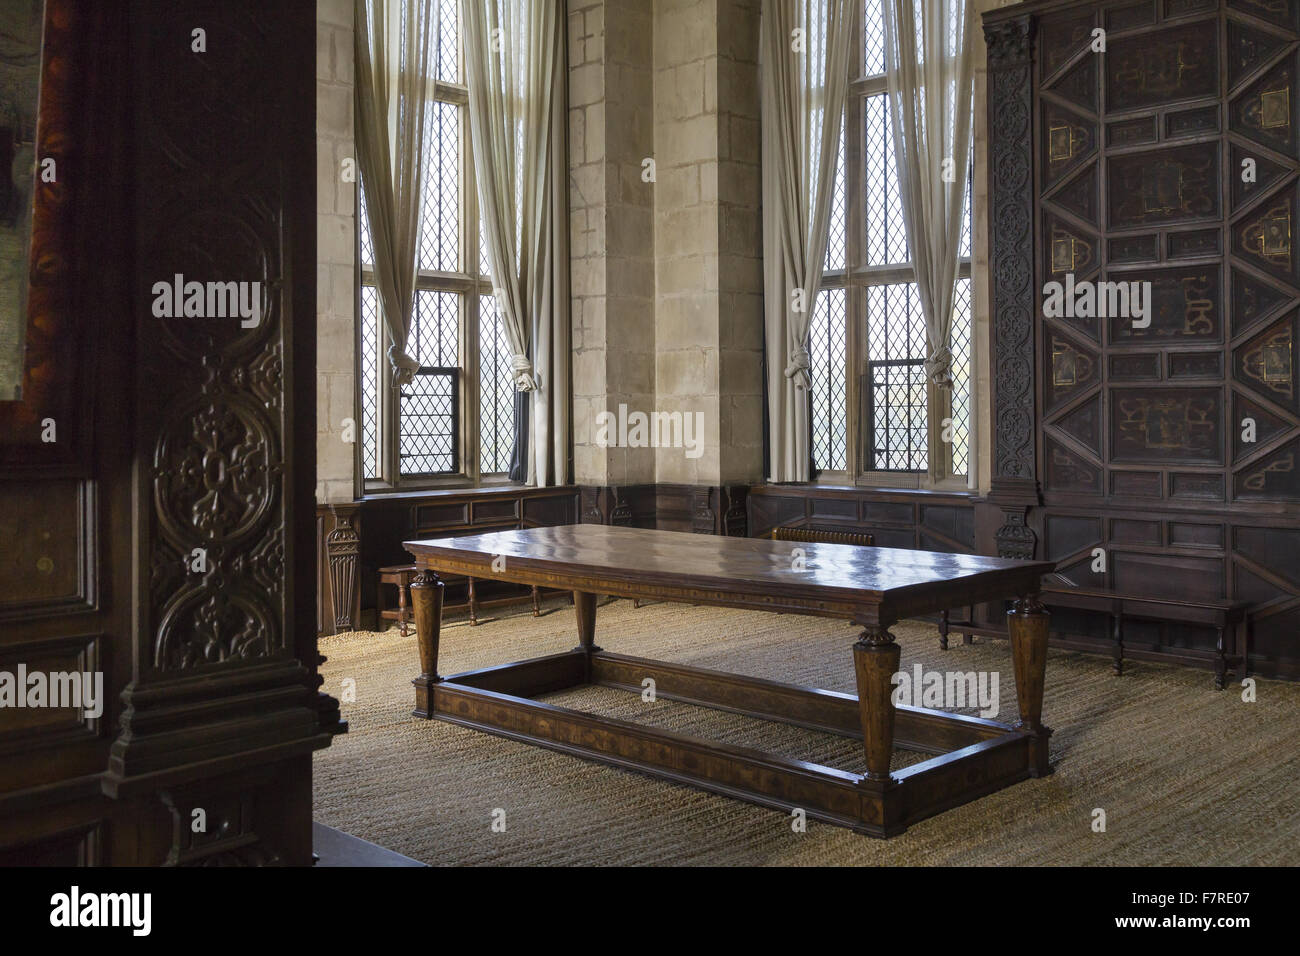 Furniture And Panelled Walls In The High Great Chamber, Hardwick Hall,  Derbyshire.